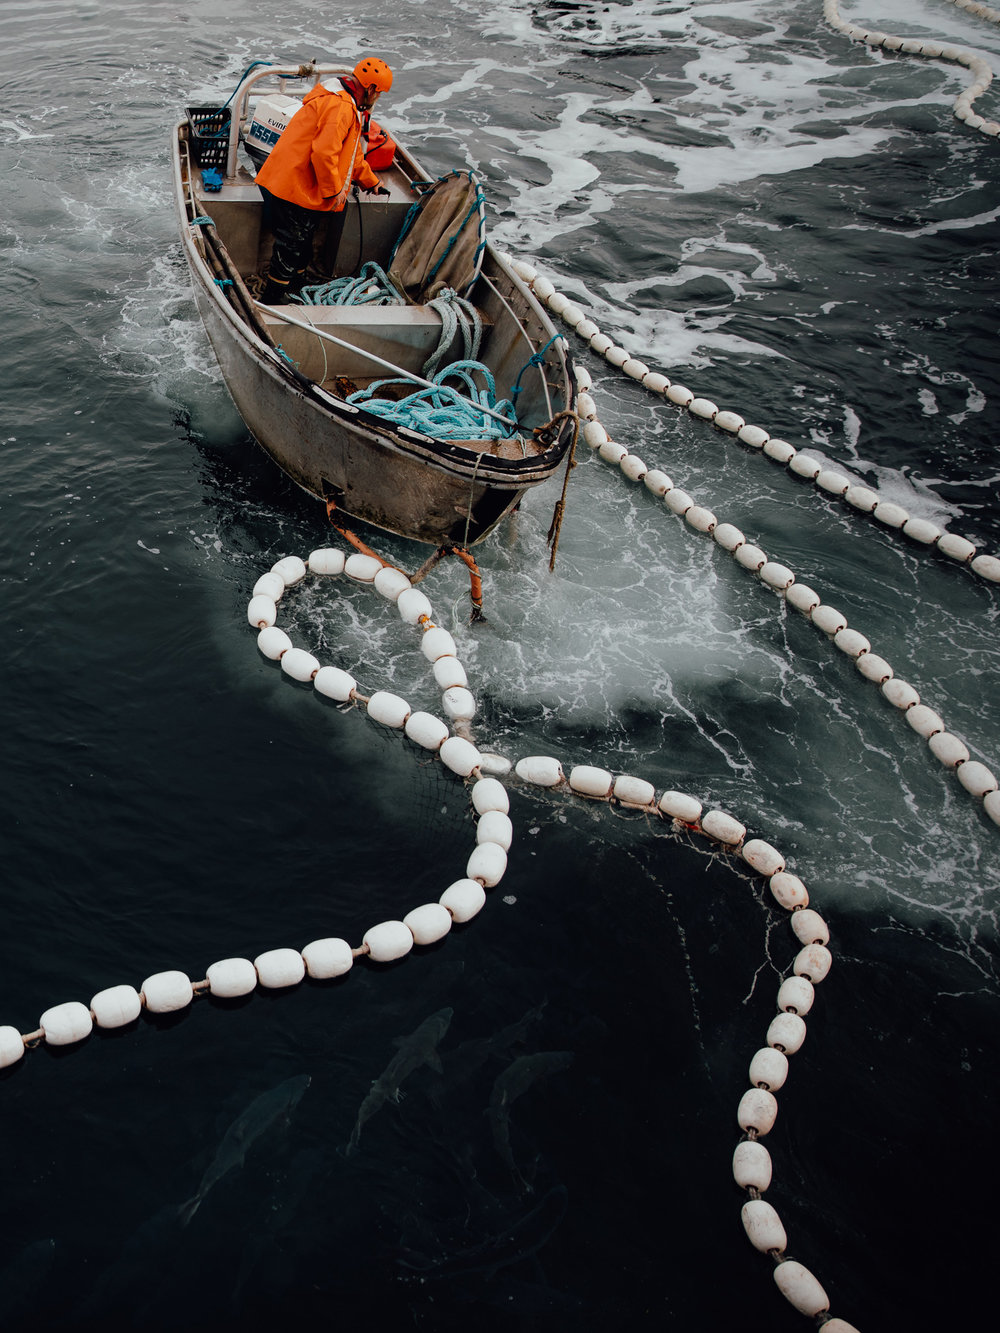 Marine Stewardship Council • Sustainable Fisheries